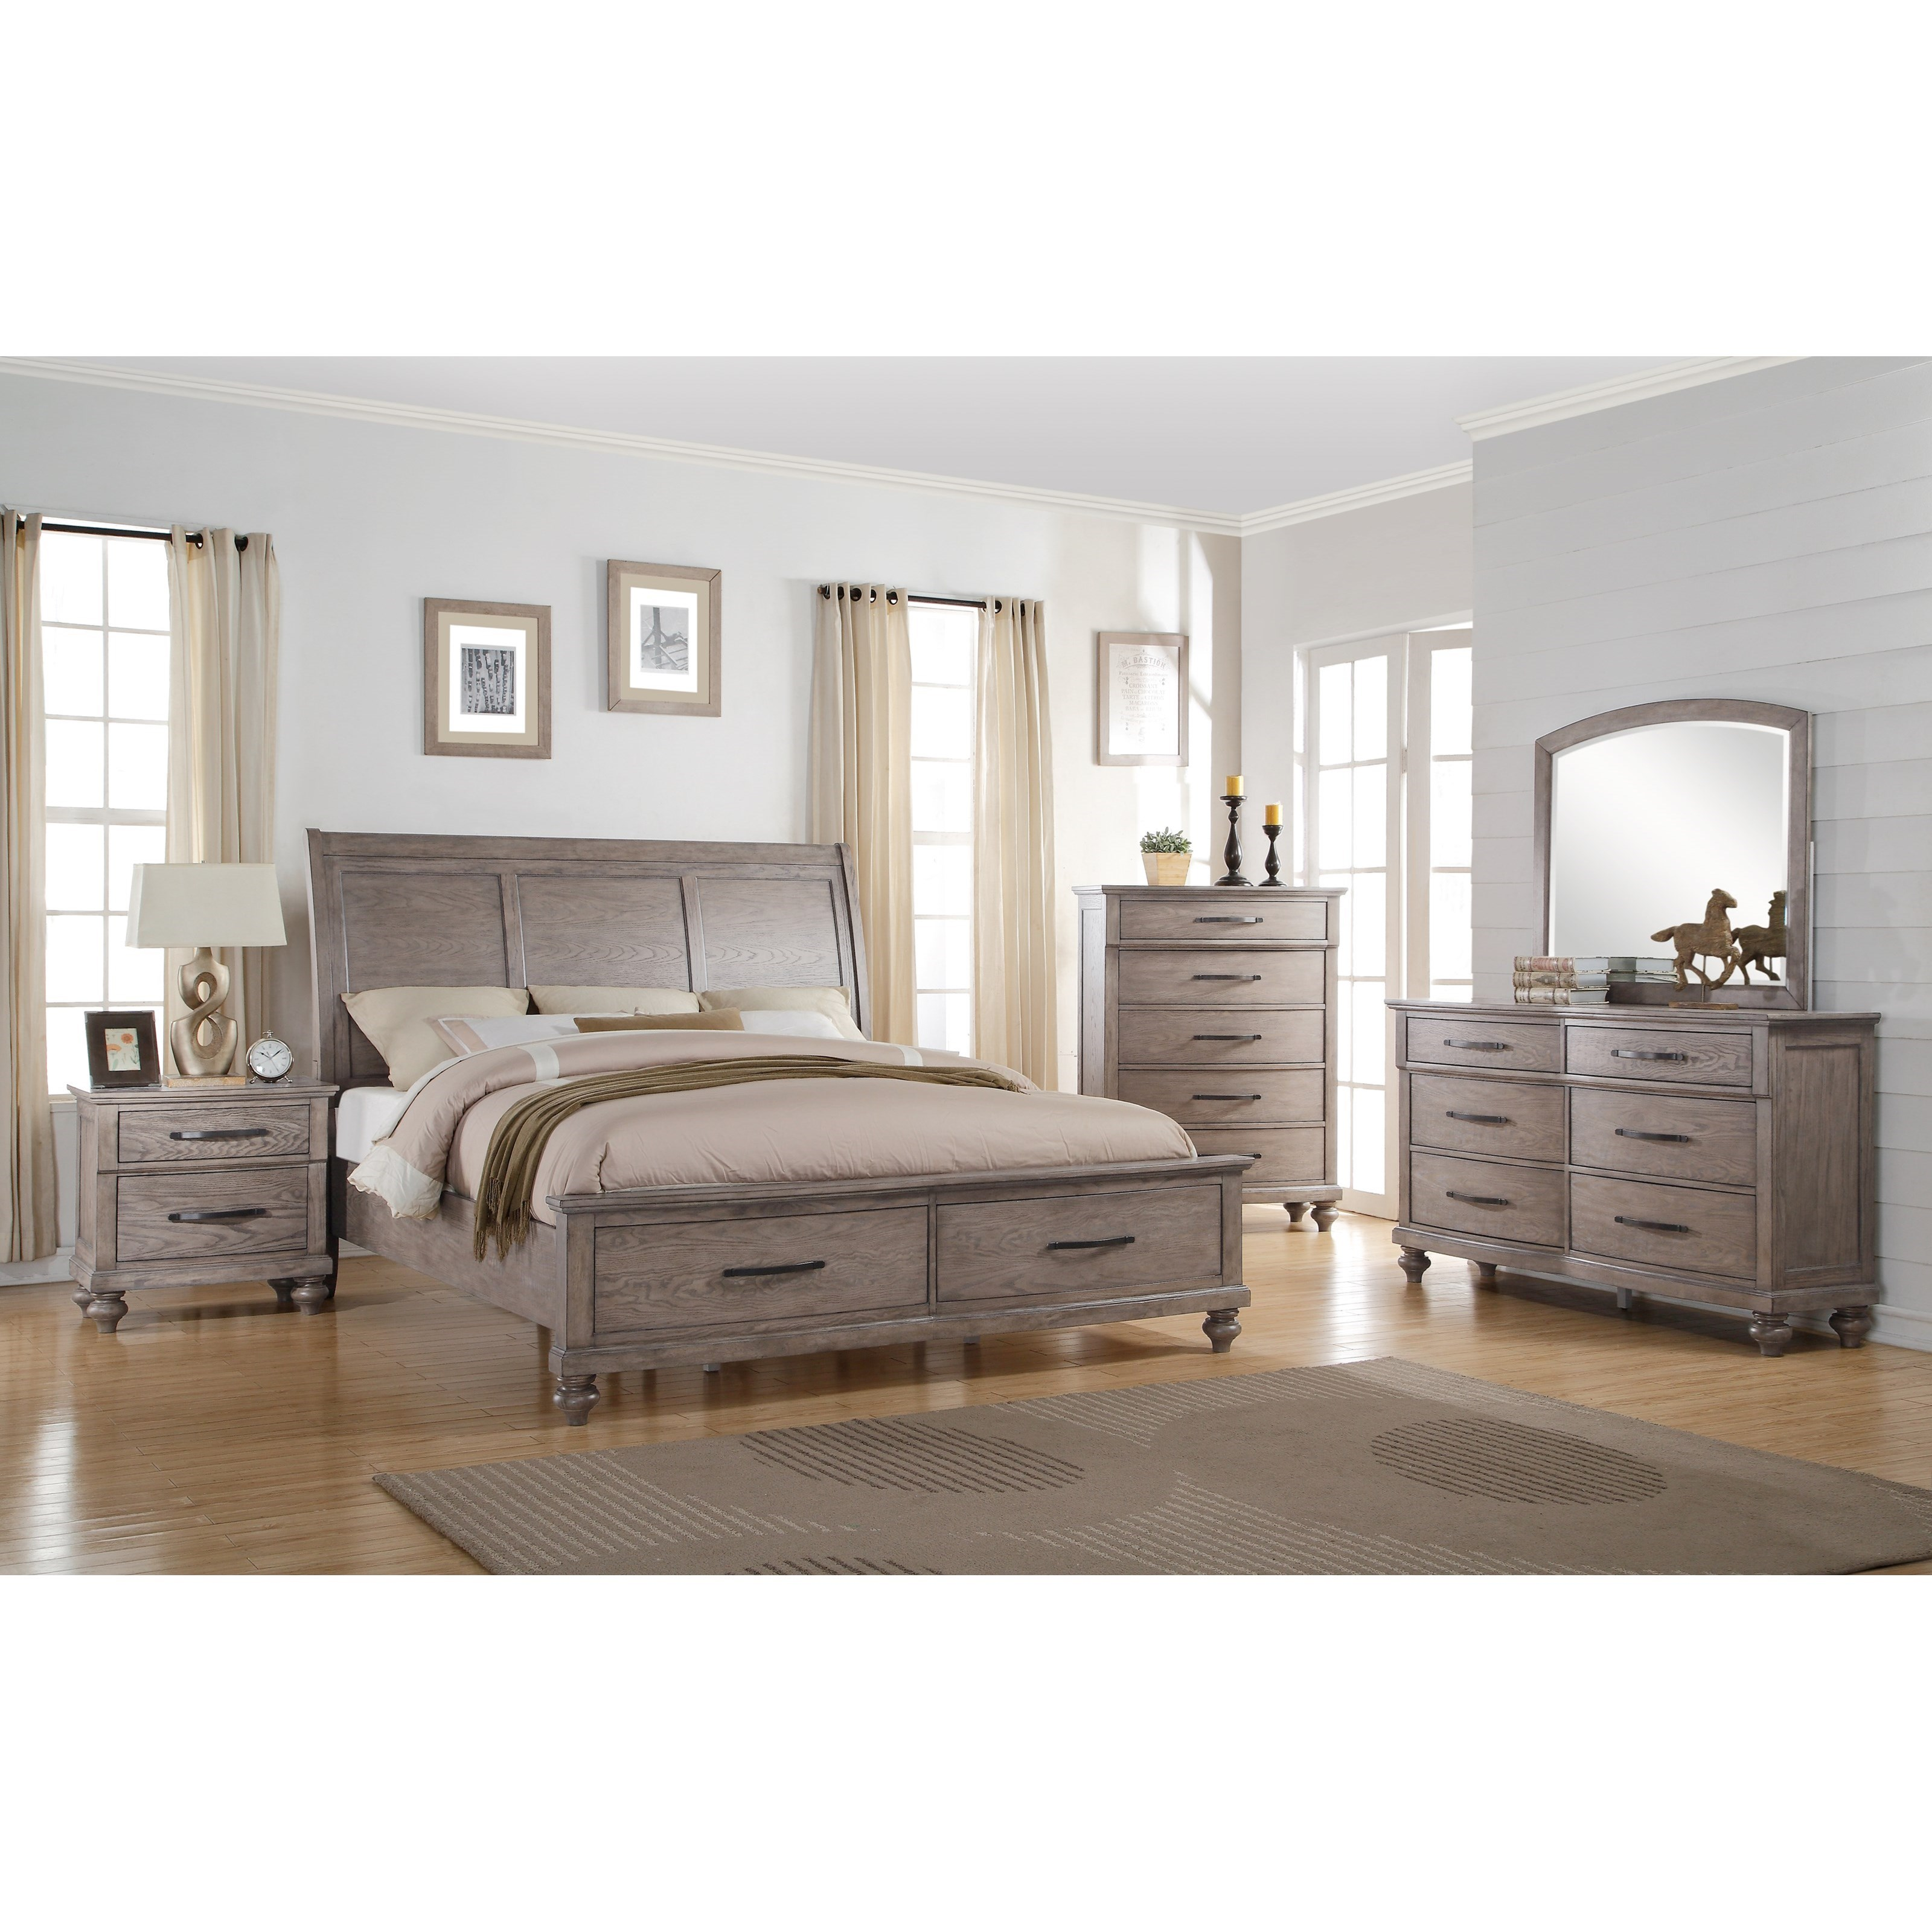 New Classic La Jolla Queen Bedroom Group - Item Number: B1033 Q Bedroom Group 1